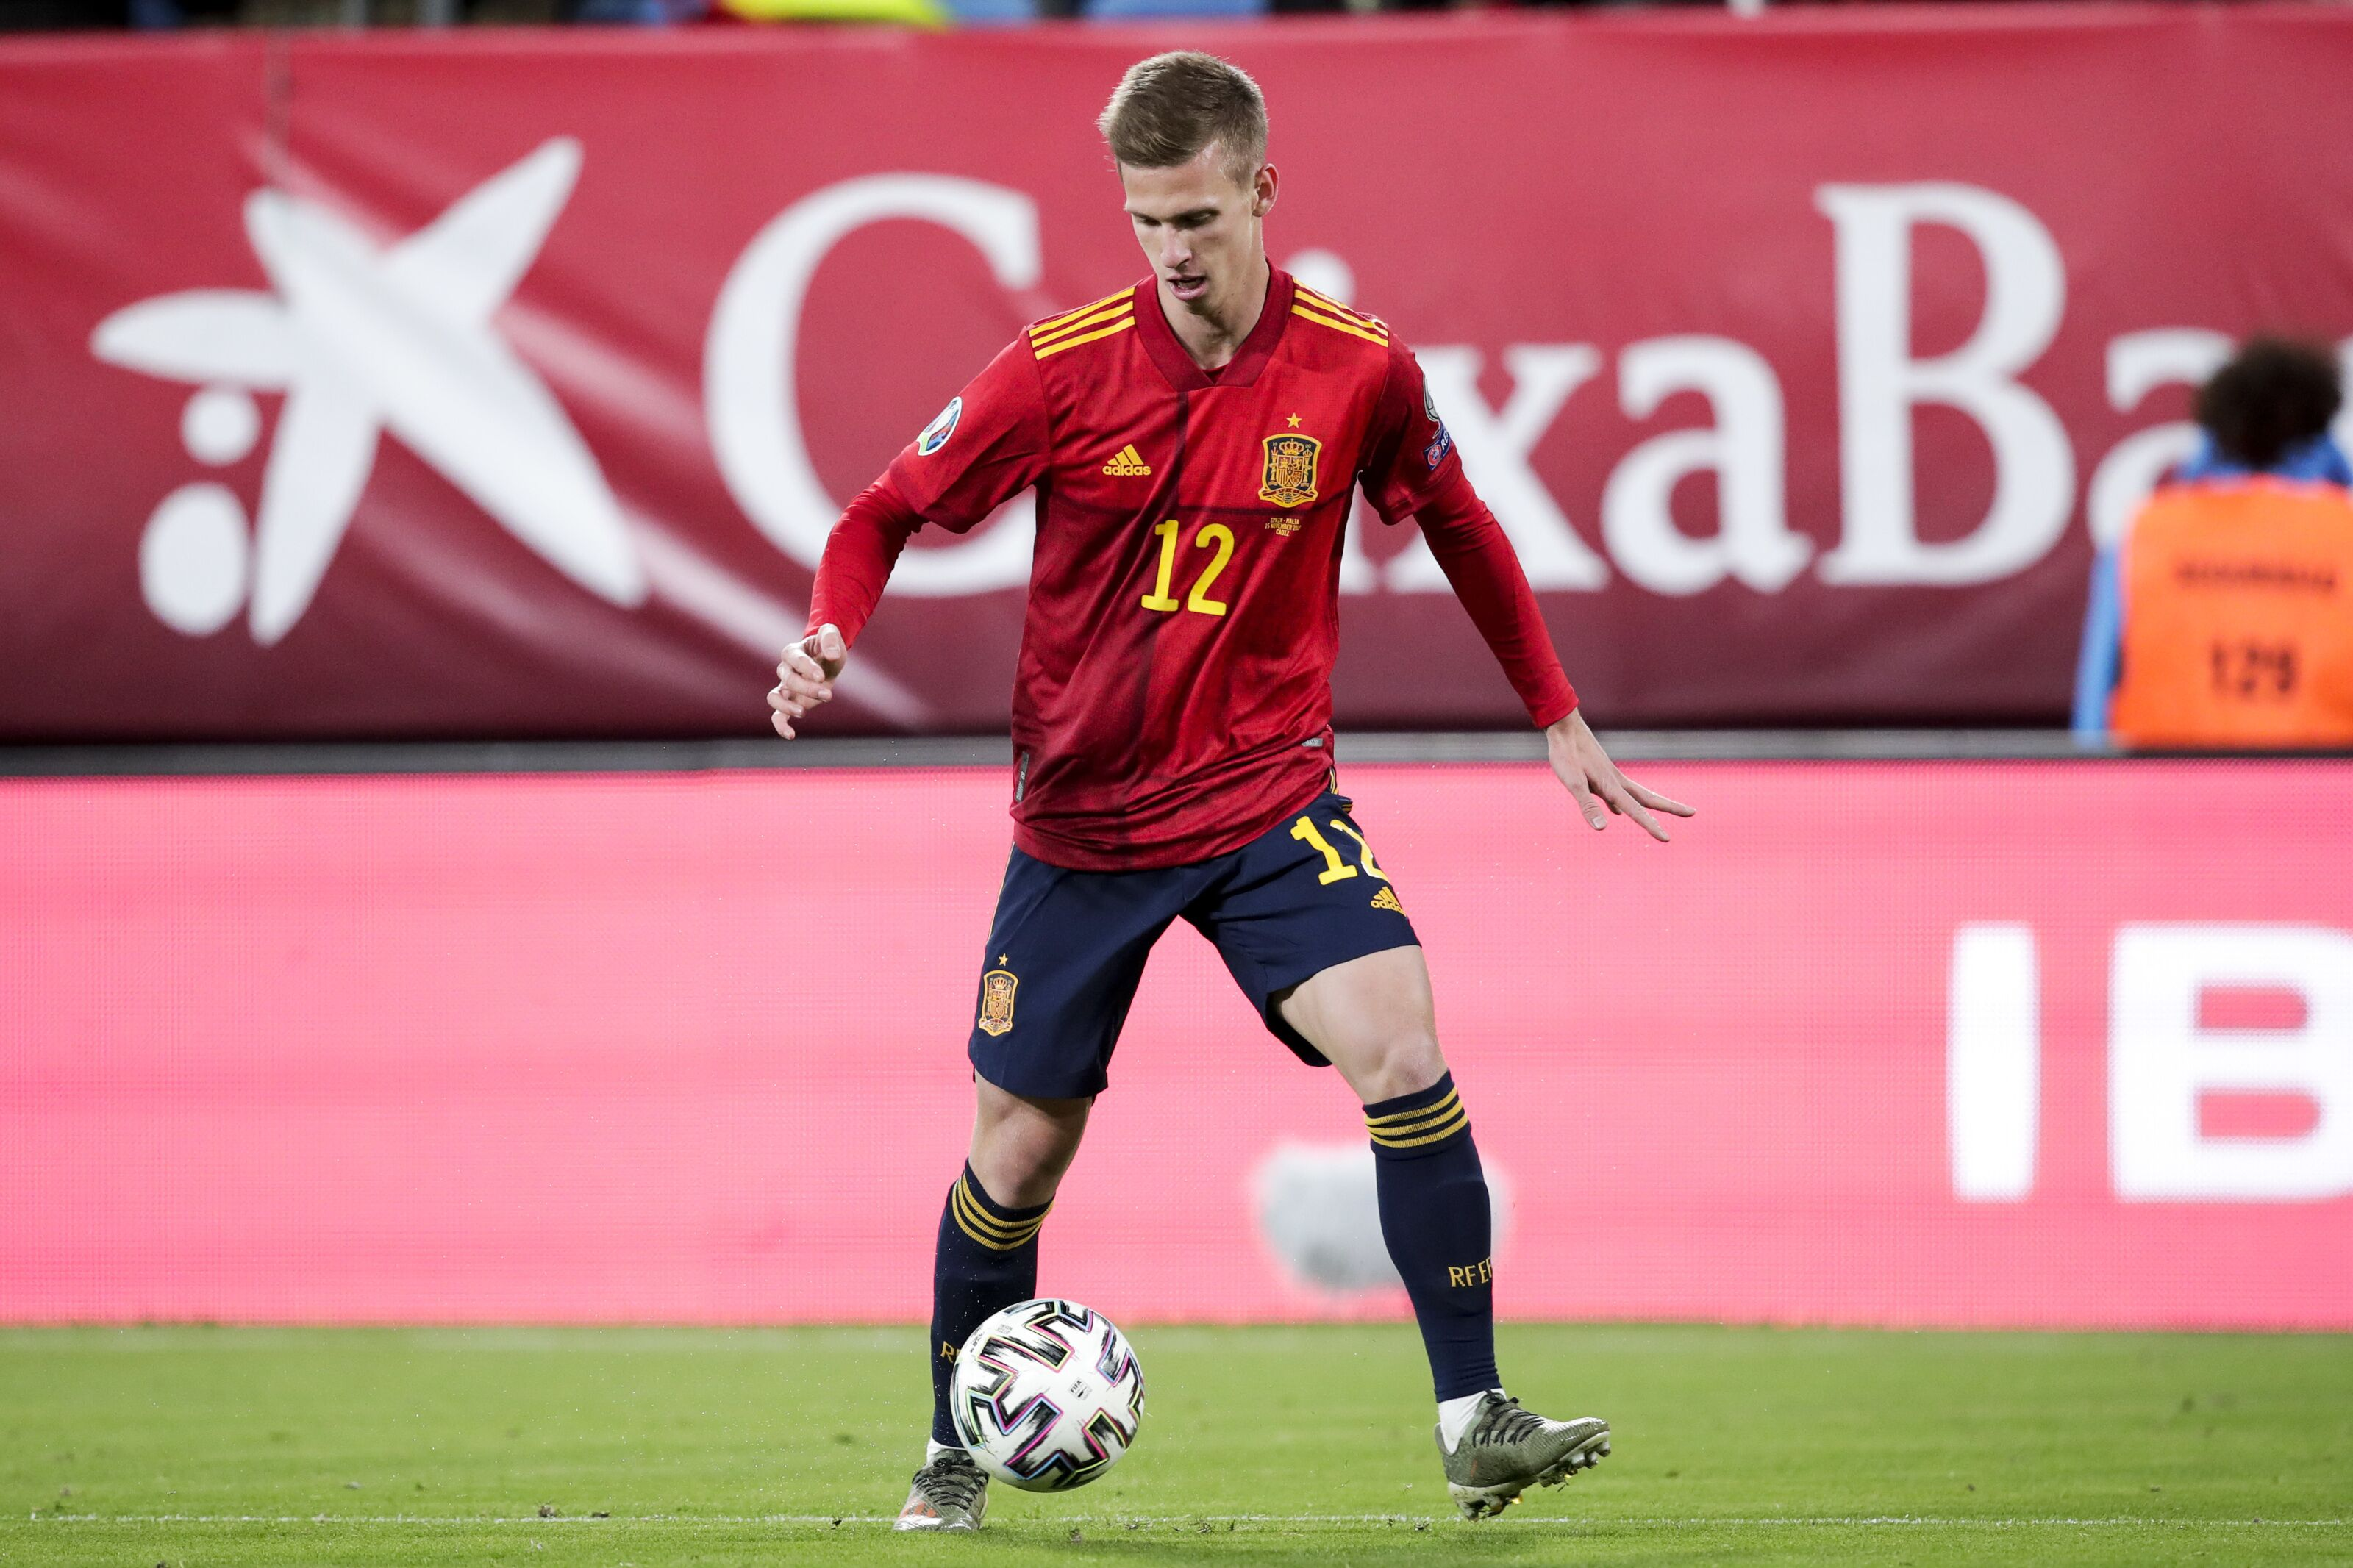 Chelsea and Barcelona set to tussle for young sensation